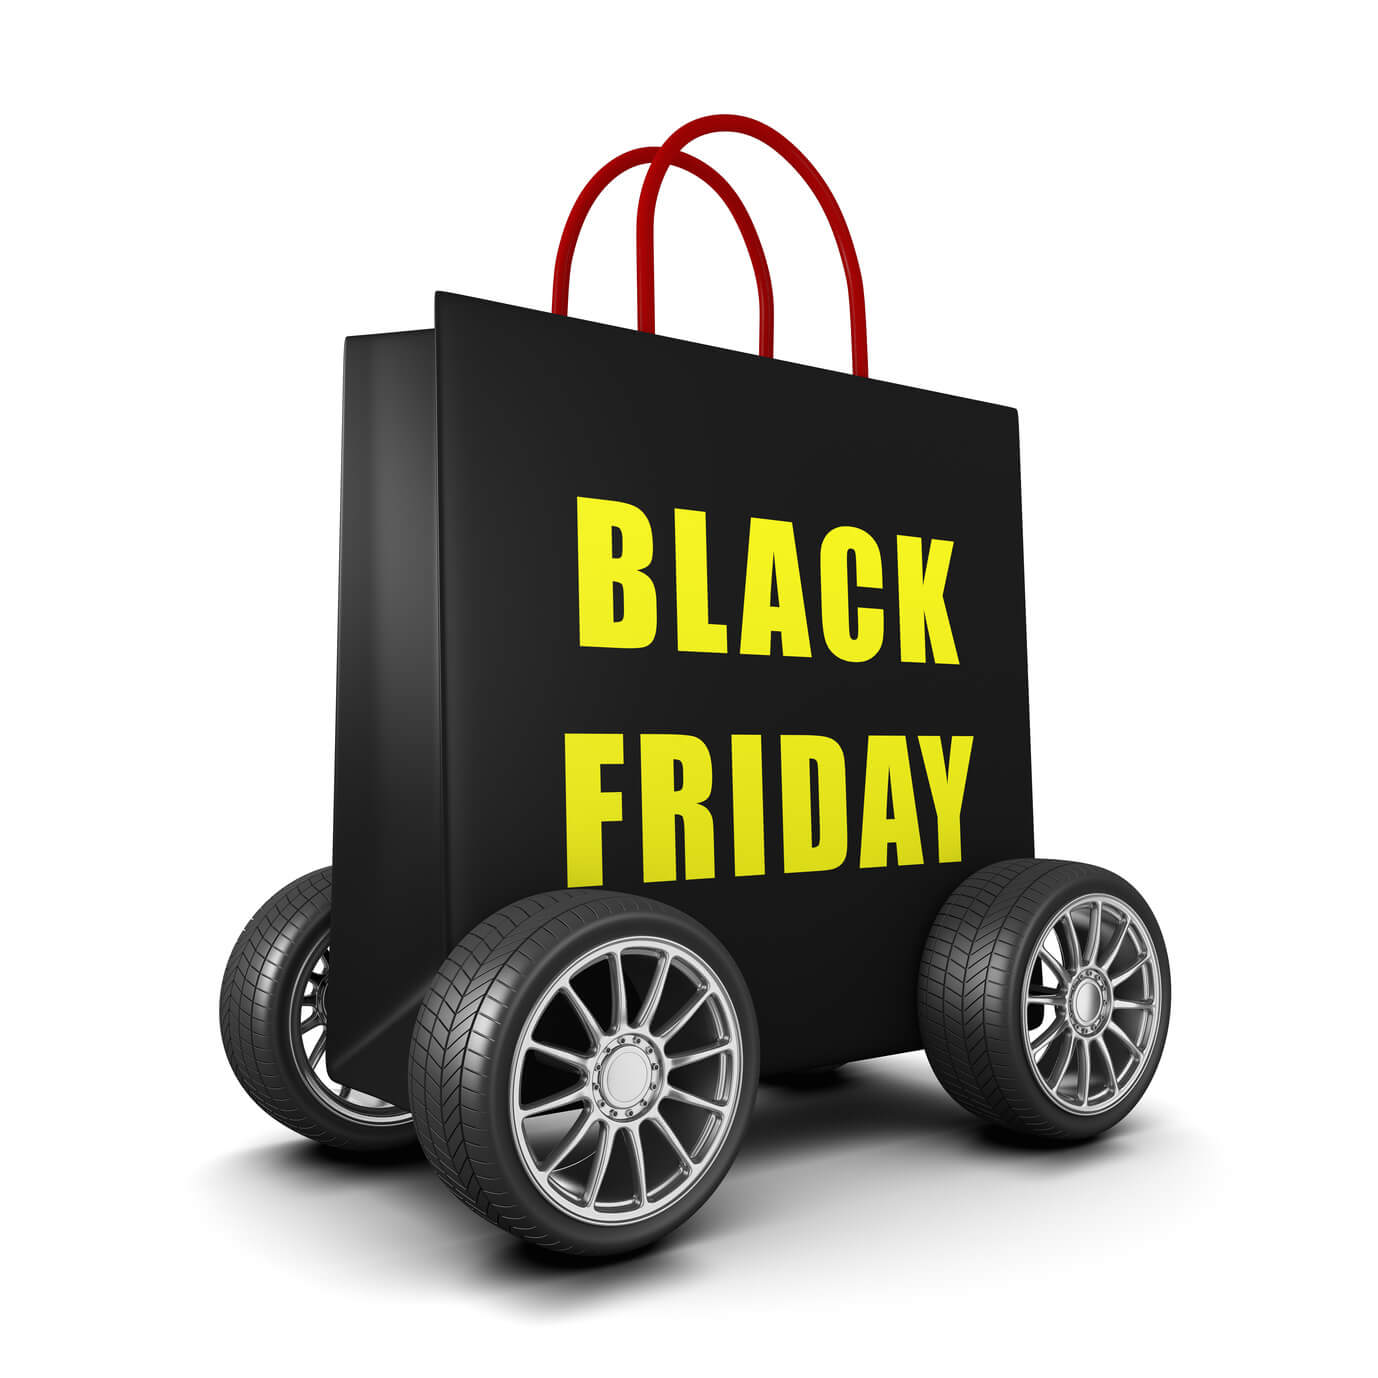 35ff051b22 Black Friday 2019 in Italia  Scopri la Data e le Offerte